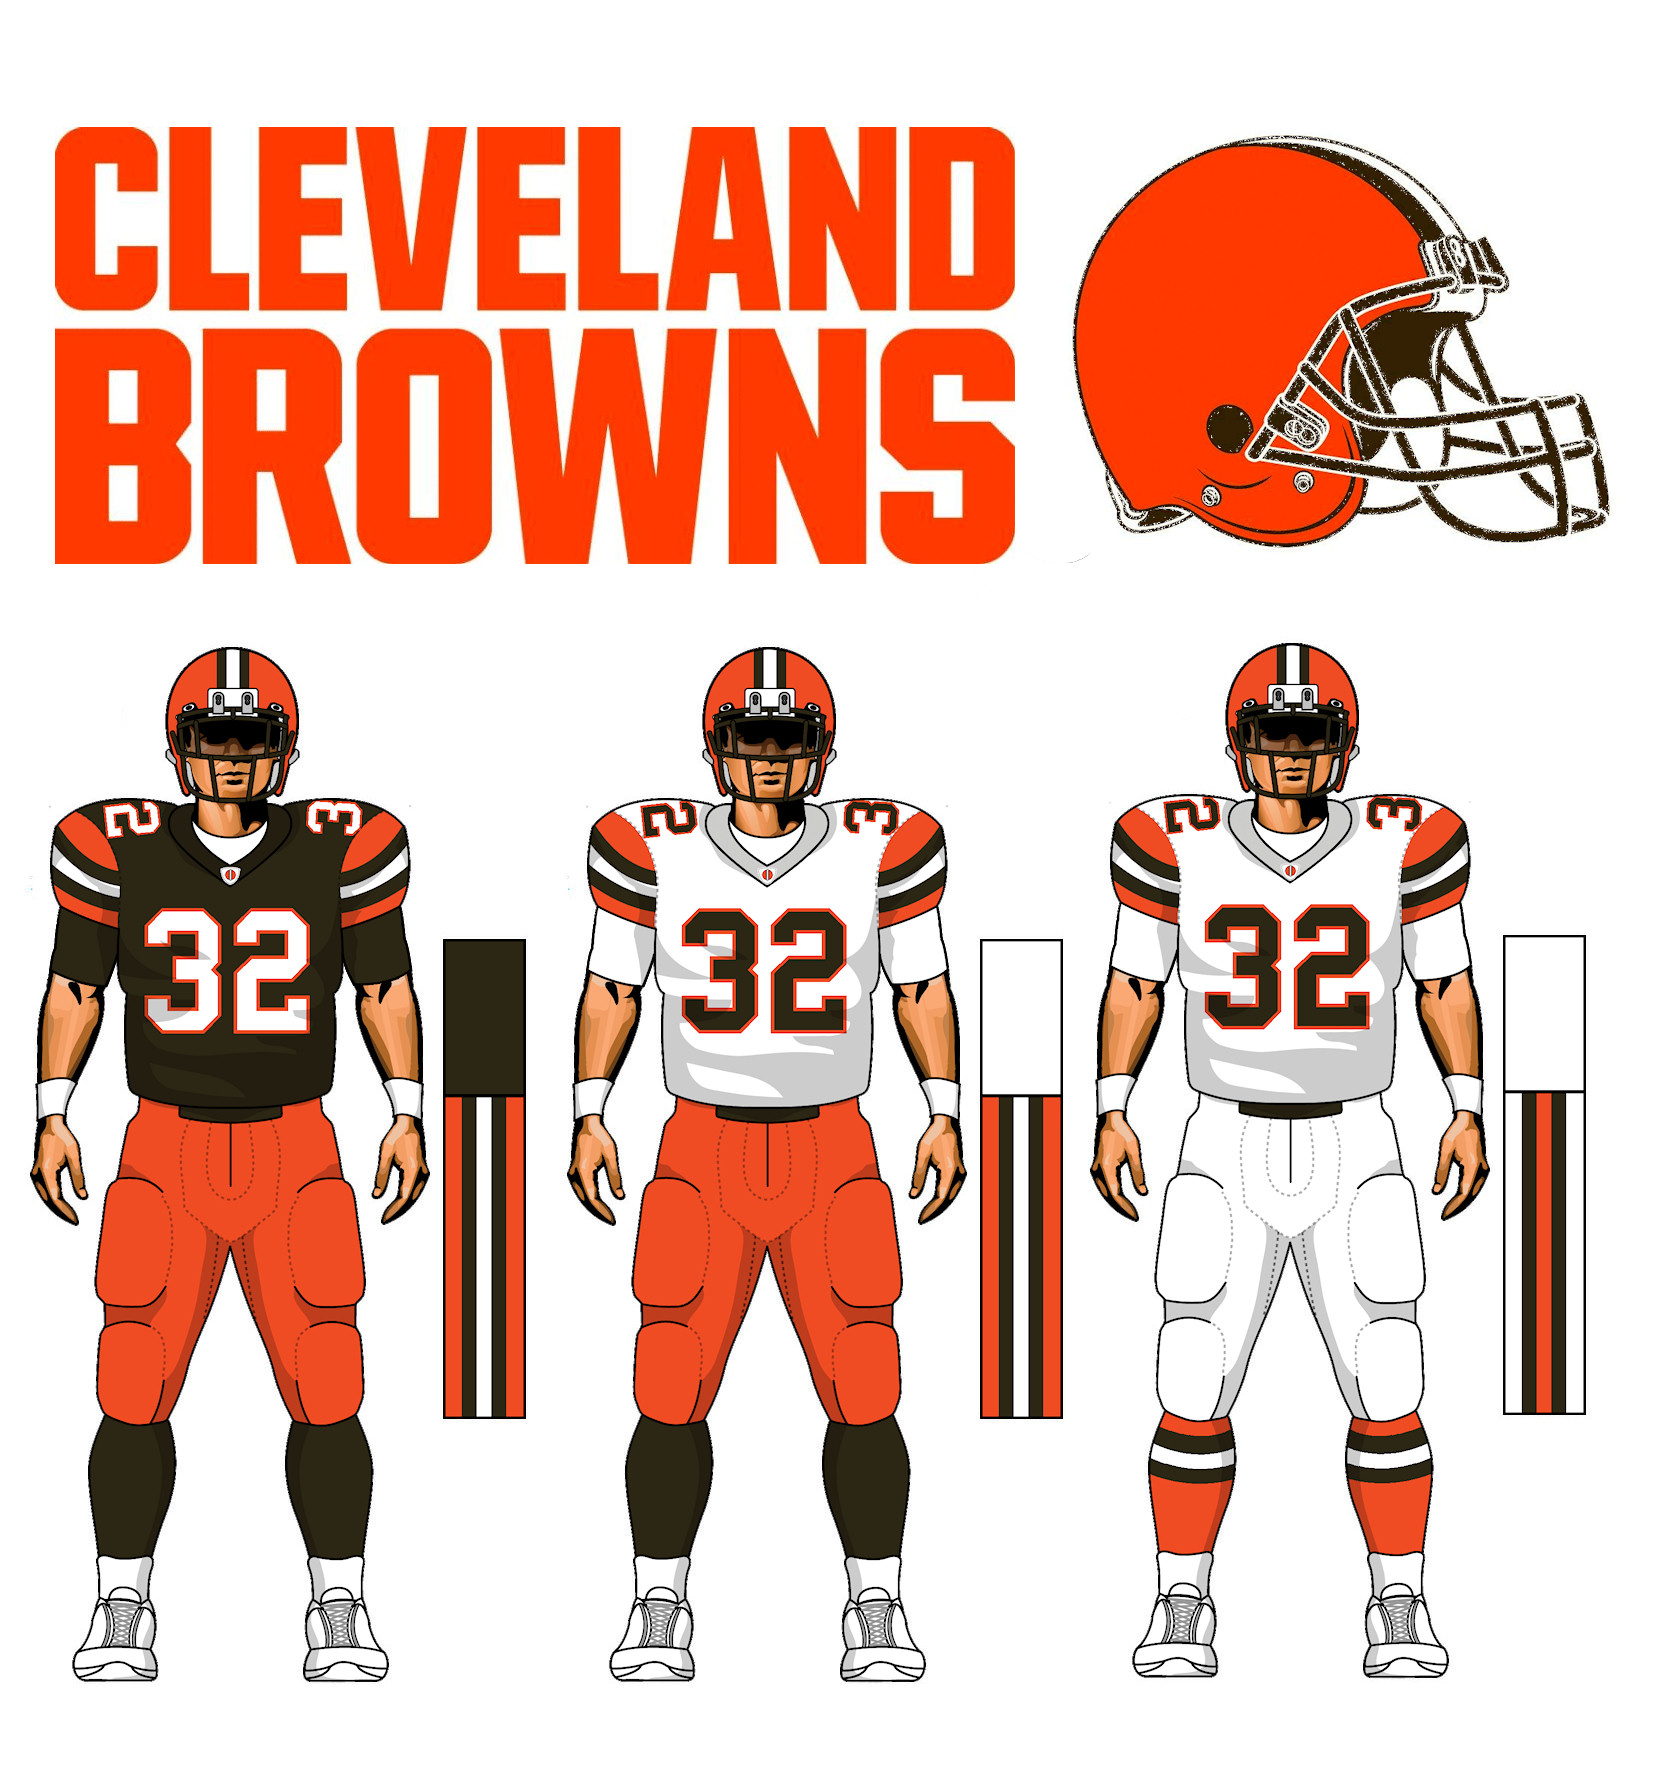 Cleveland Browns 2.0